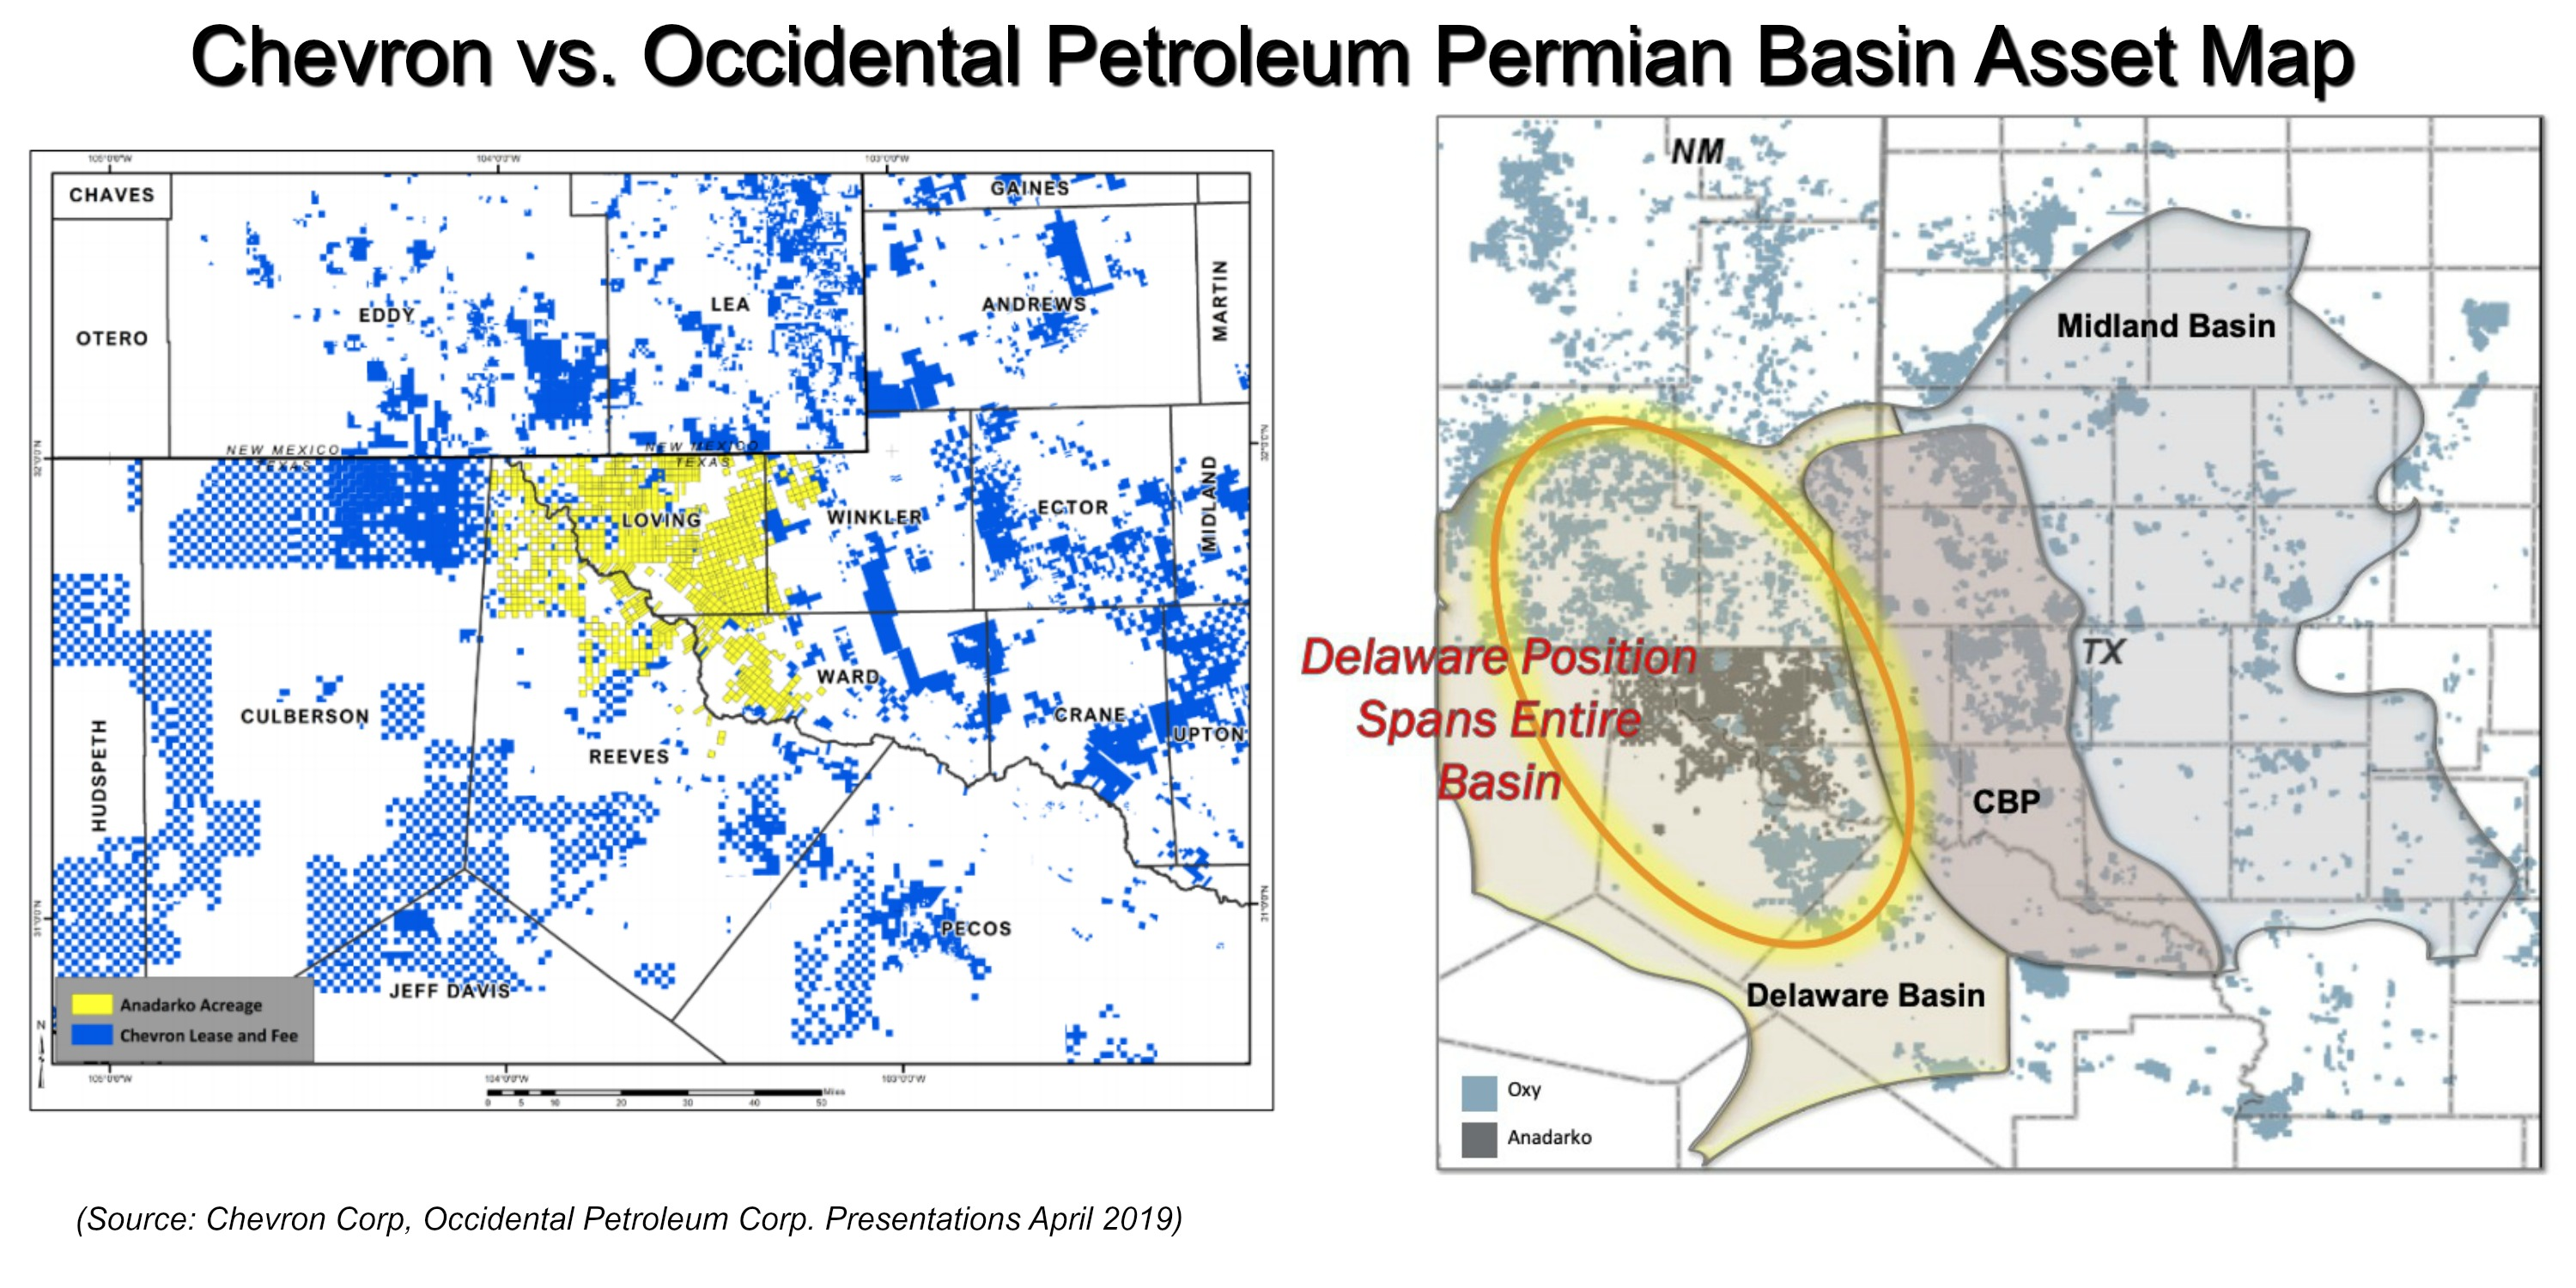 Chevron vs. Occidental Petroleum Permian Basin Asset Map (Source Chevron Corp, Occidental Petroleum Corp. Presentations April 2019)